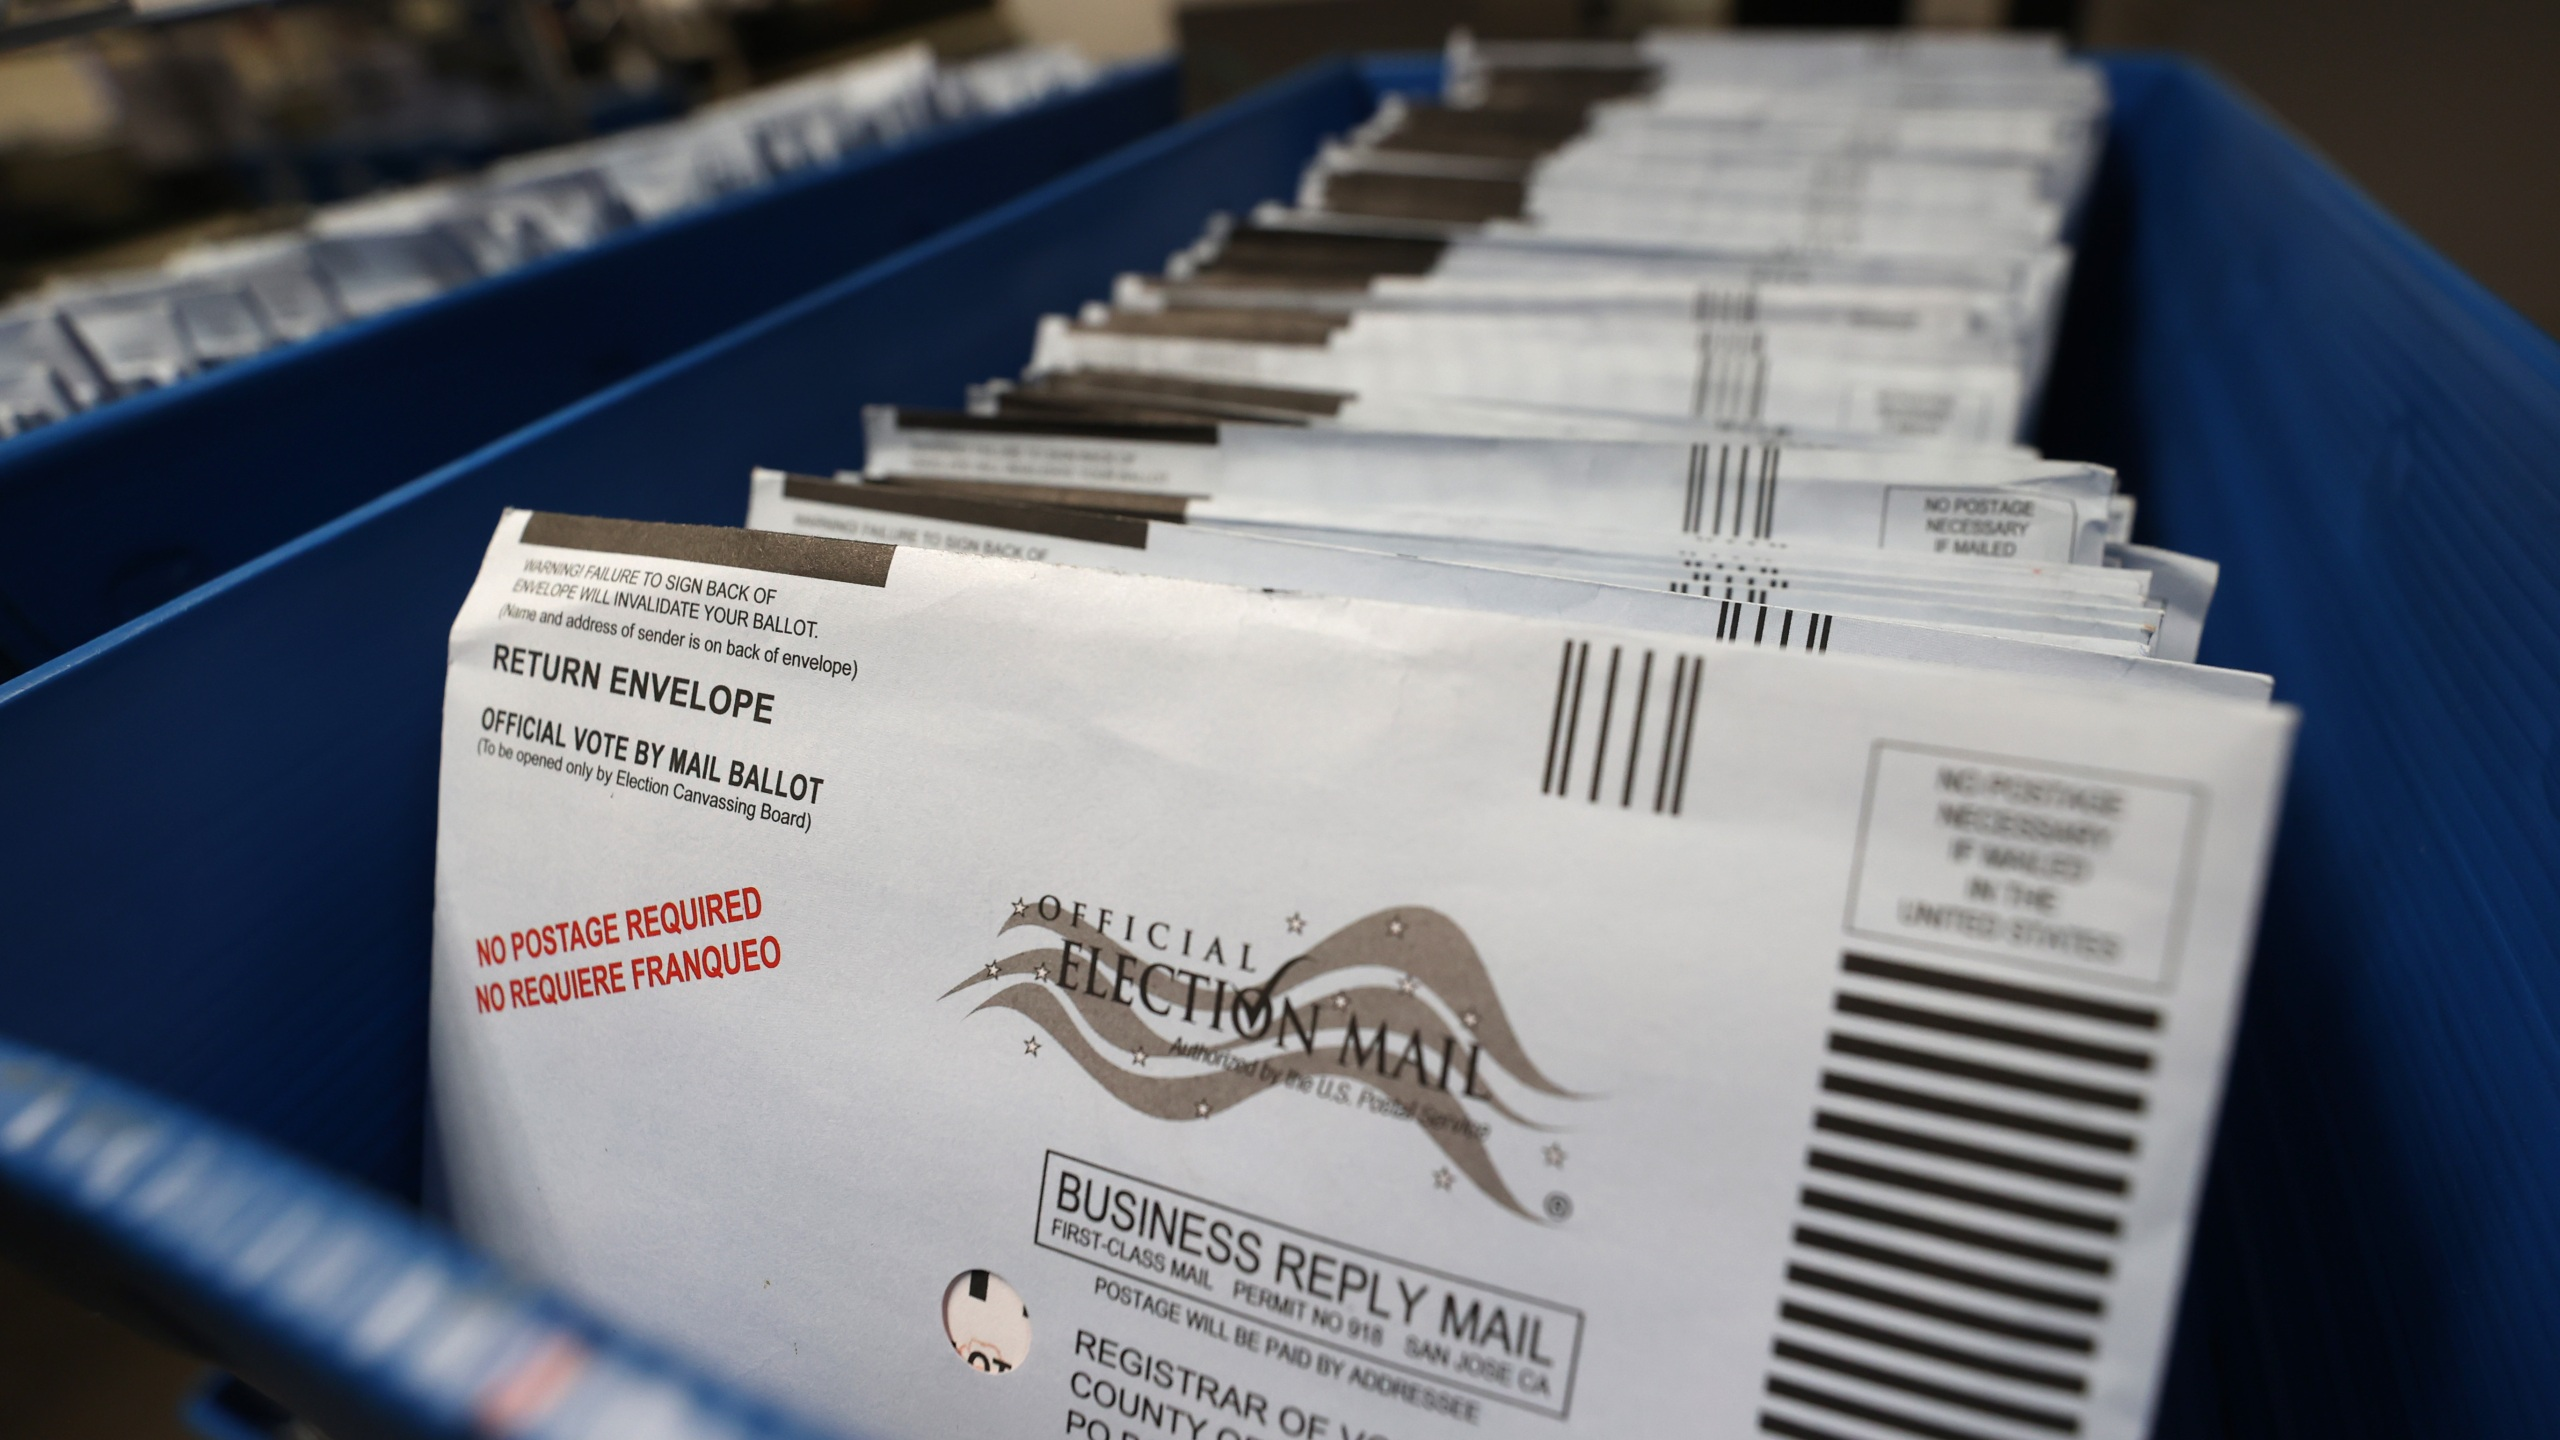 Mail-in ballots sit in trays before being sorted at the Santa Clara County registrar of voters office on Oct. 13, 2020 in San Jose, California. (Justin Sullivan/Getty Images)